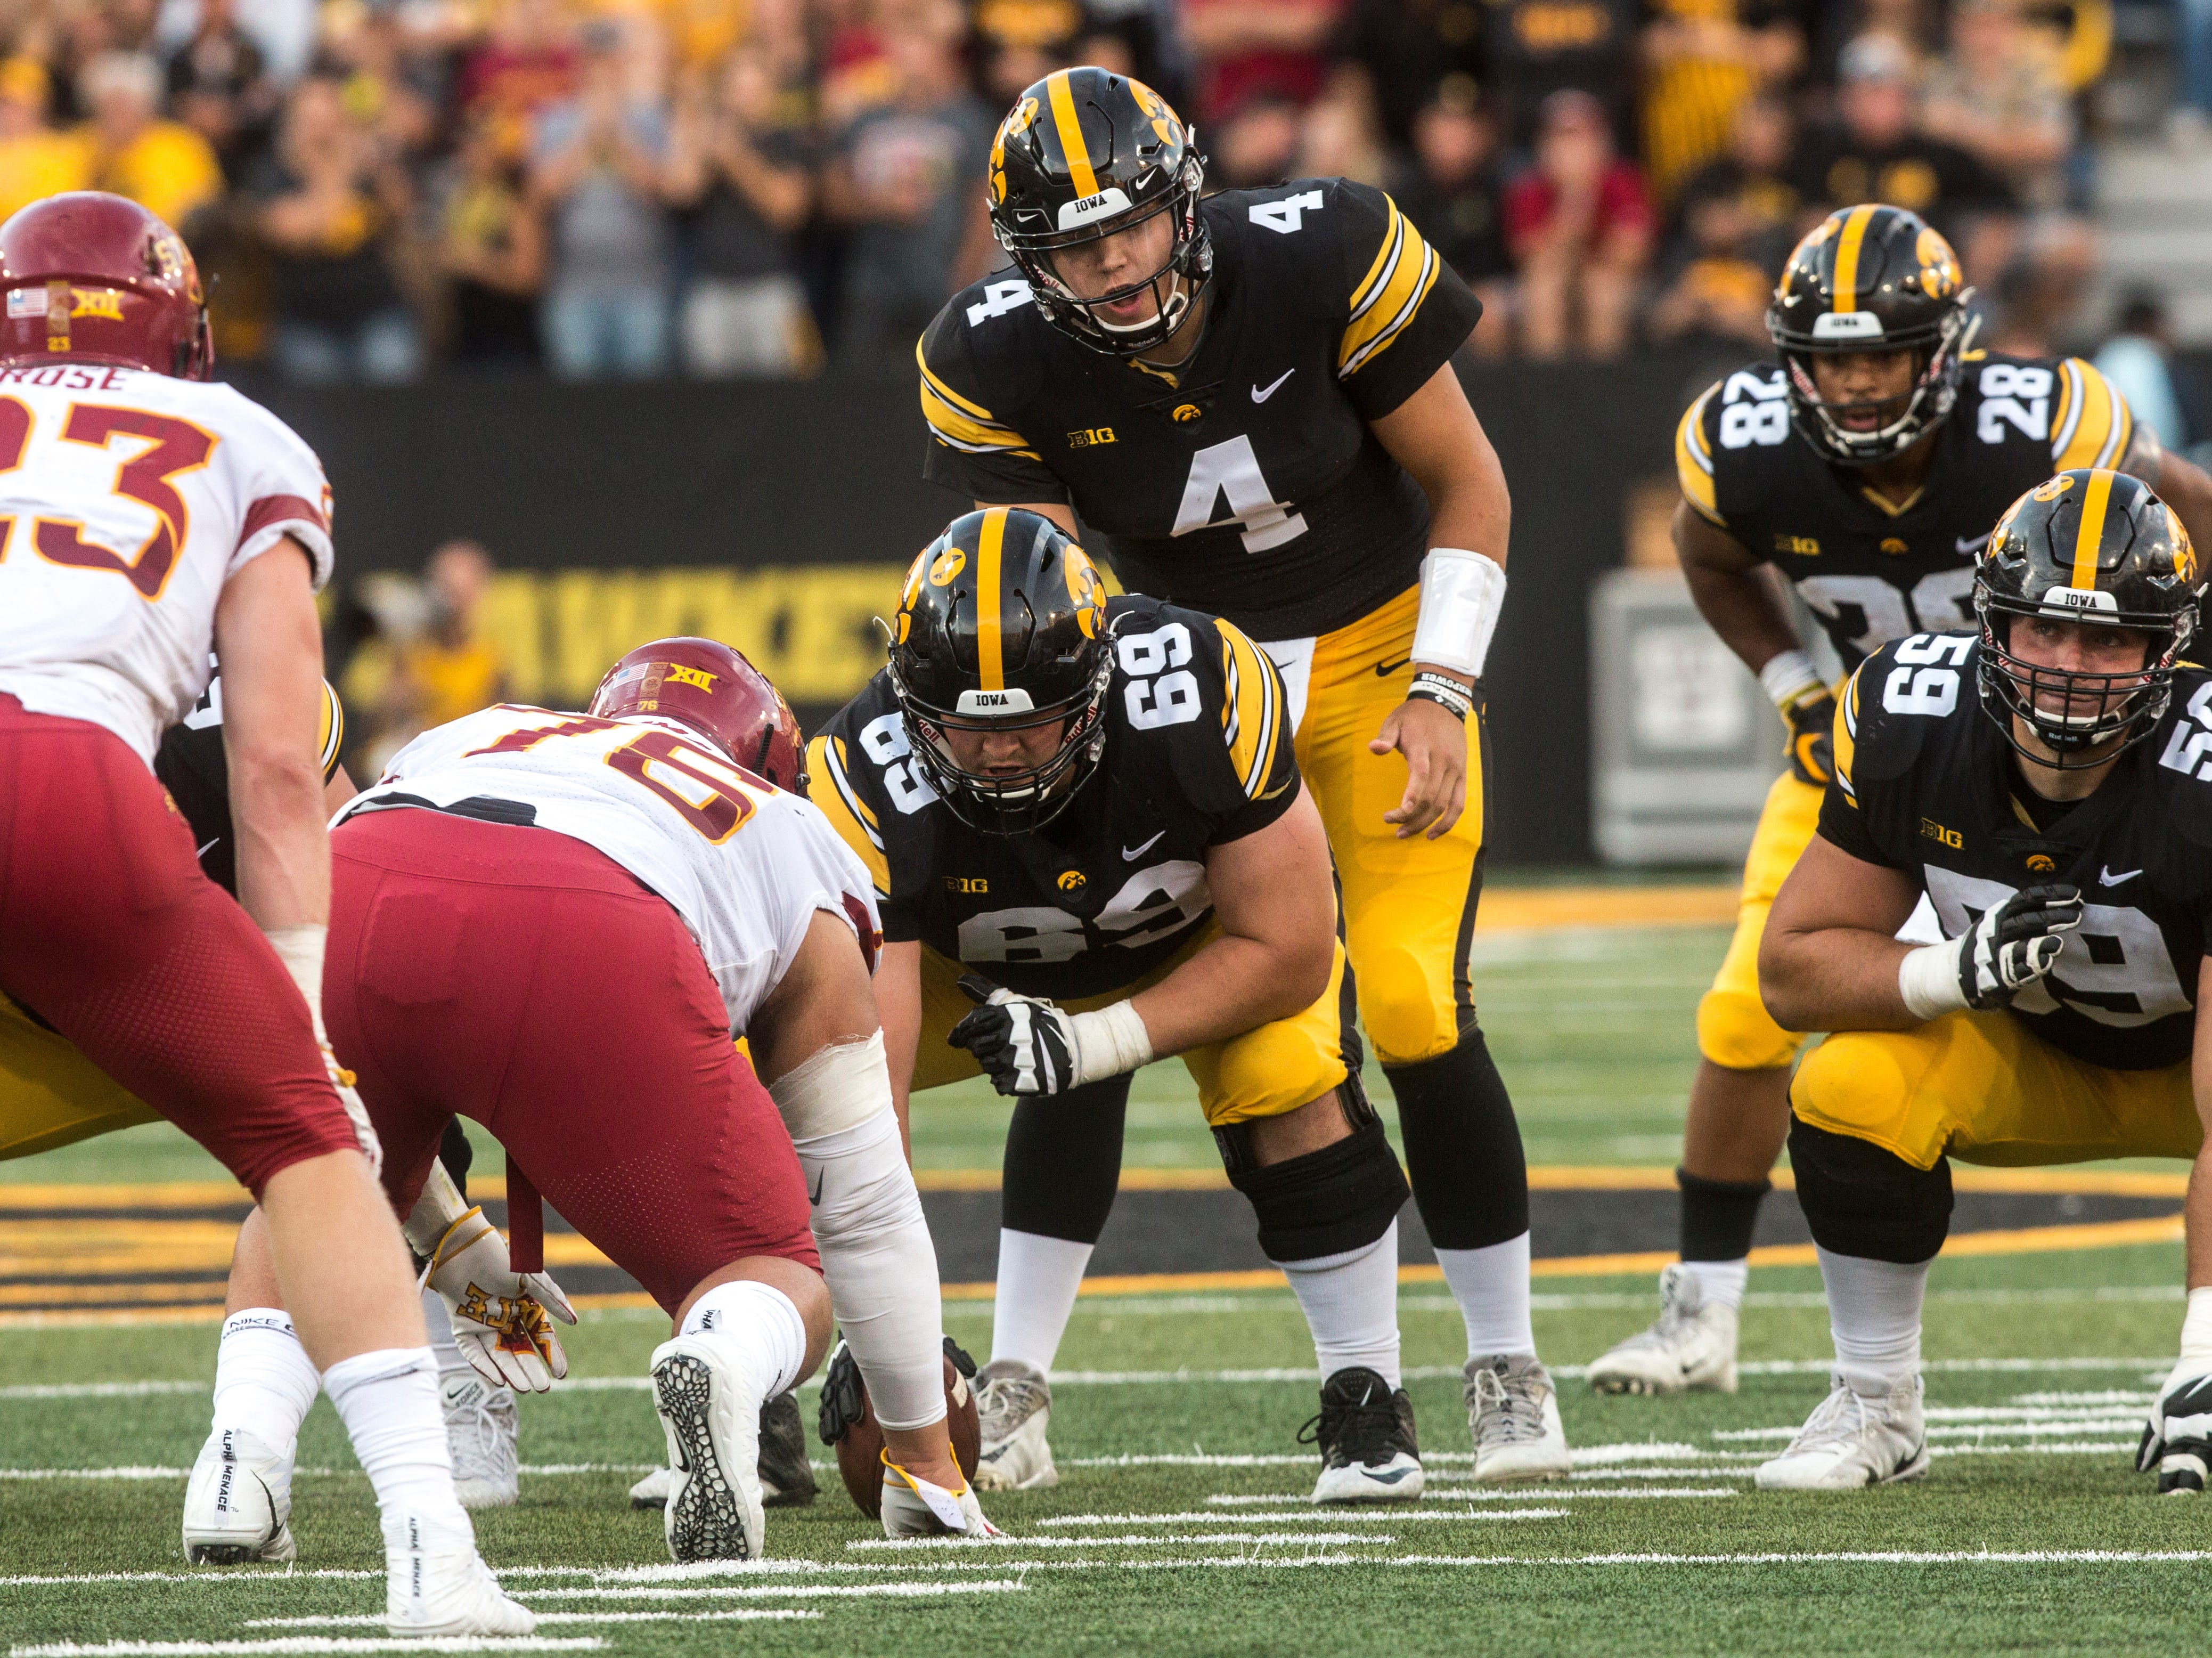 Iowa quarterback Nate Stanley (4) takes a snap from offensive lineman Keegan Render (69) while offensive lineman Ross Reynolds (59) gets set during the Cy-Hawk NCAA football game on Saturday, Sept. 8, 2018, at Kinnick Stadium in Iowa City.